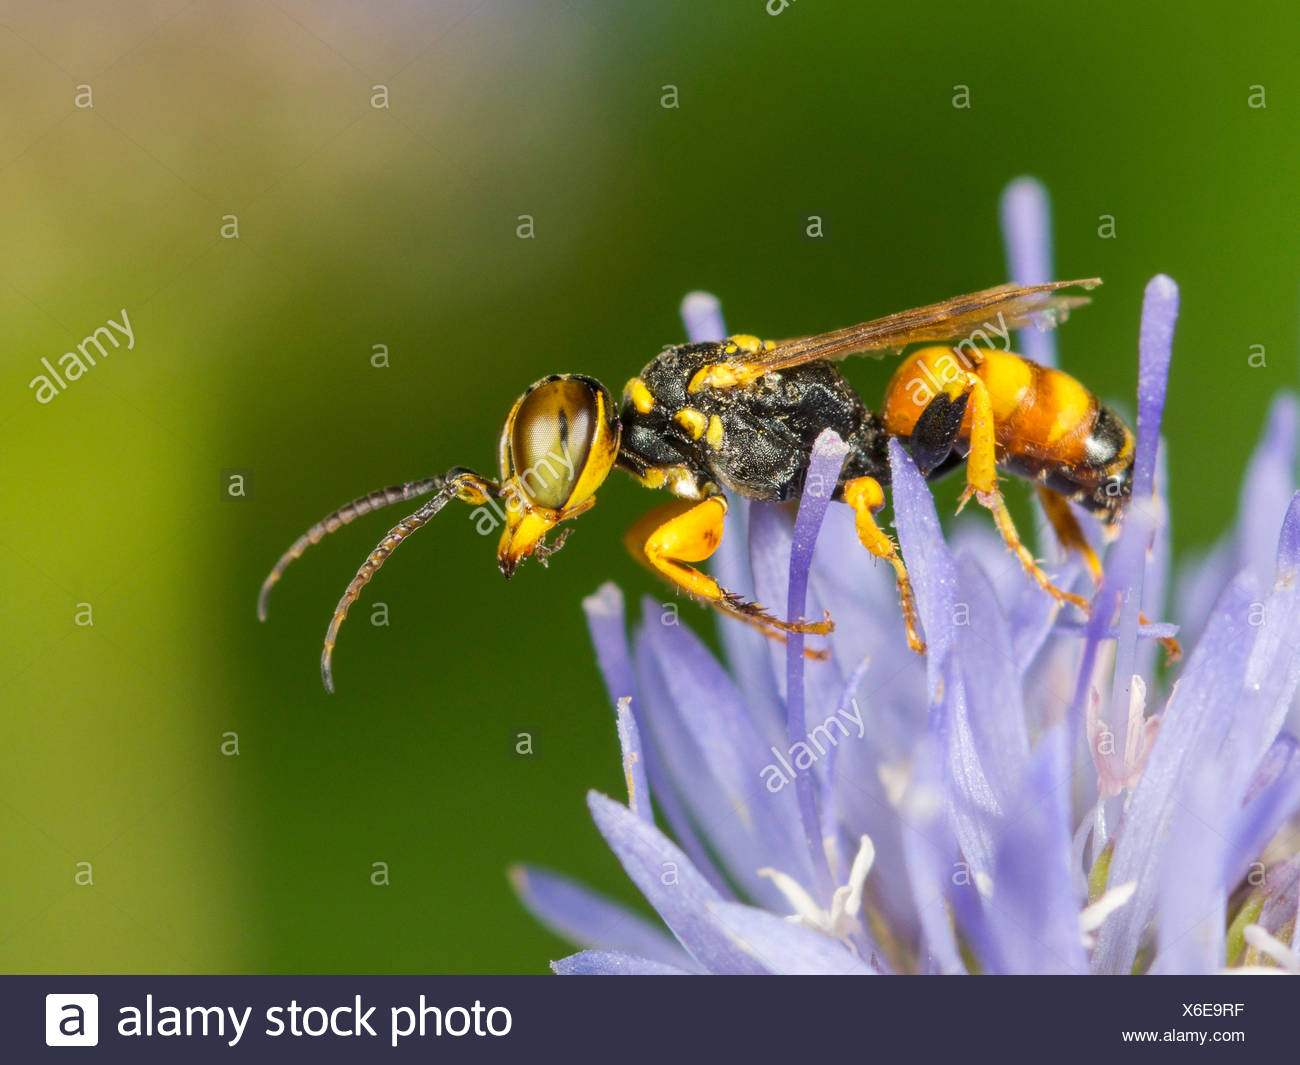 digger wasp (Dinetus pictus), Male on Sheep�s Bit Scabious (Jasione montana), Germany - Stock Image